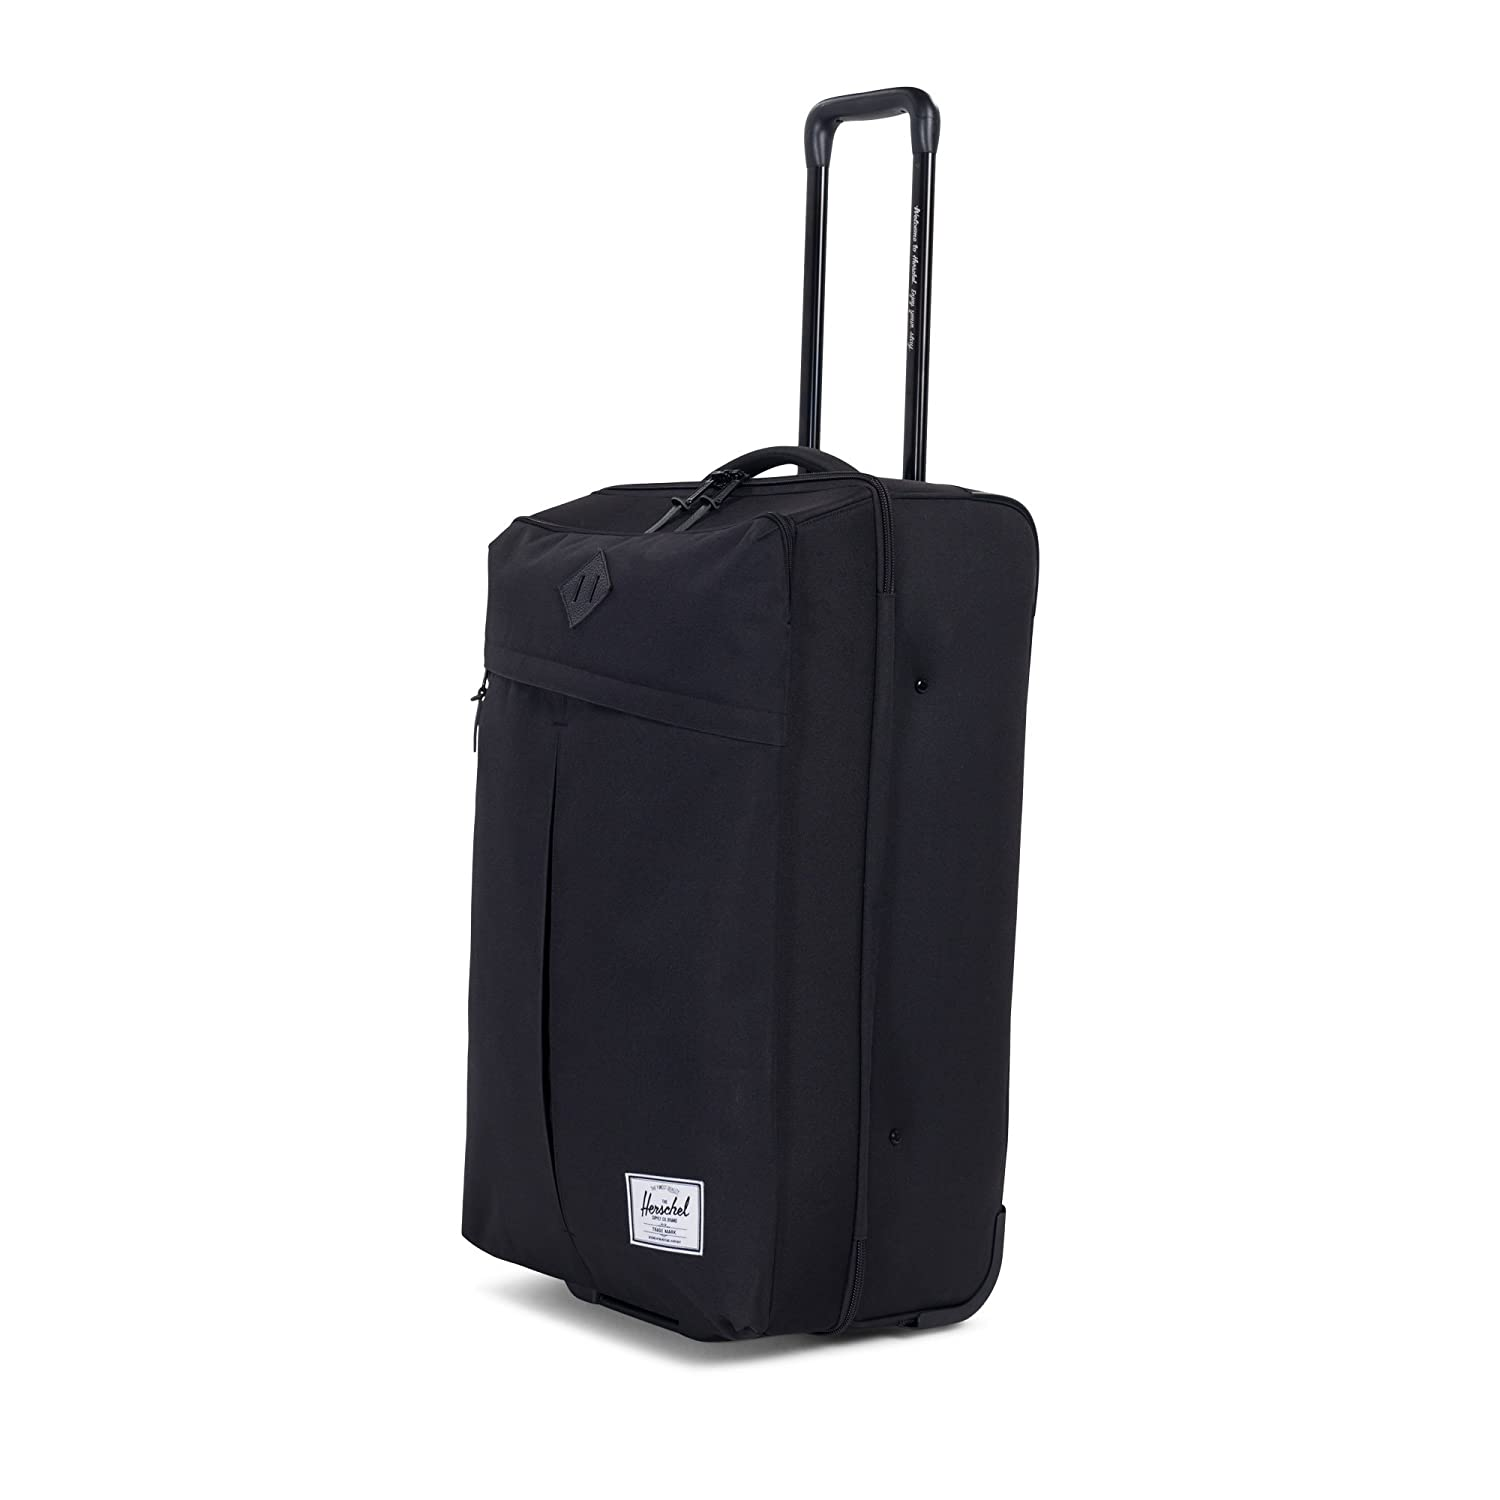 ccb55e9adb2 Amazon.com   Herschel Supply Co. Parcel, Black, One Size   Suitcases